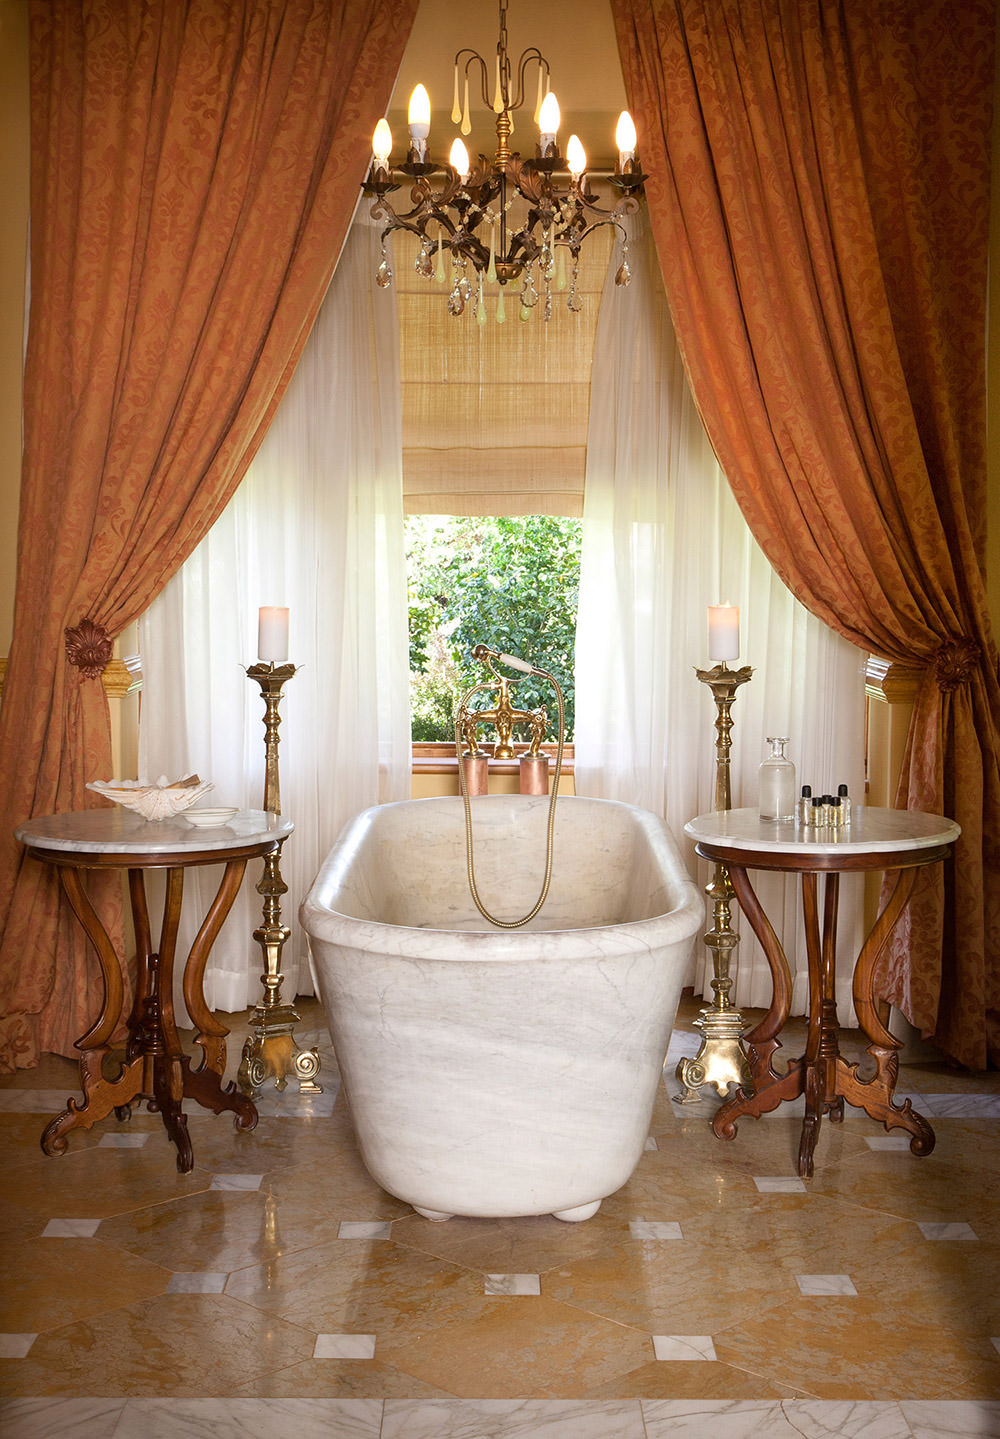 Moor Suite 1 - Marble Bath